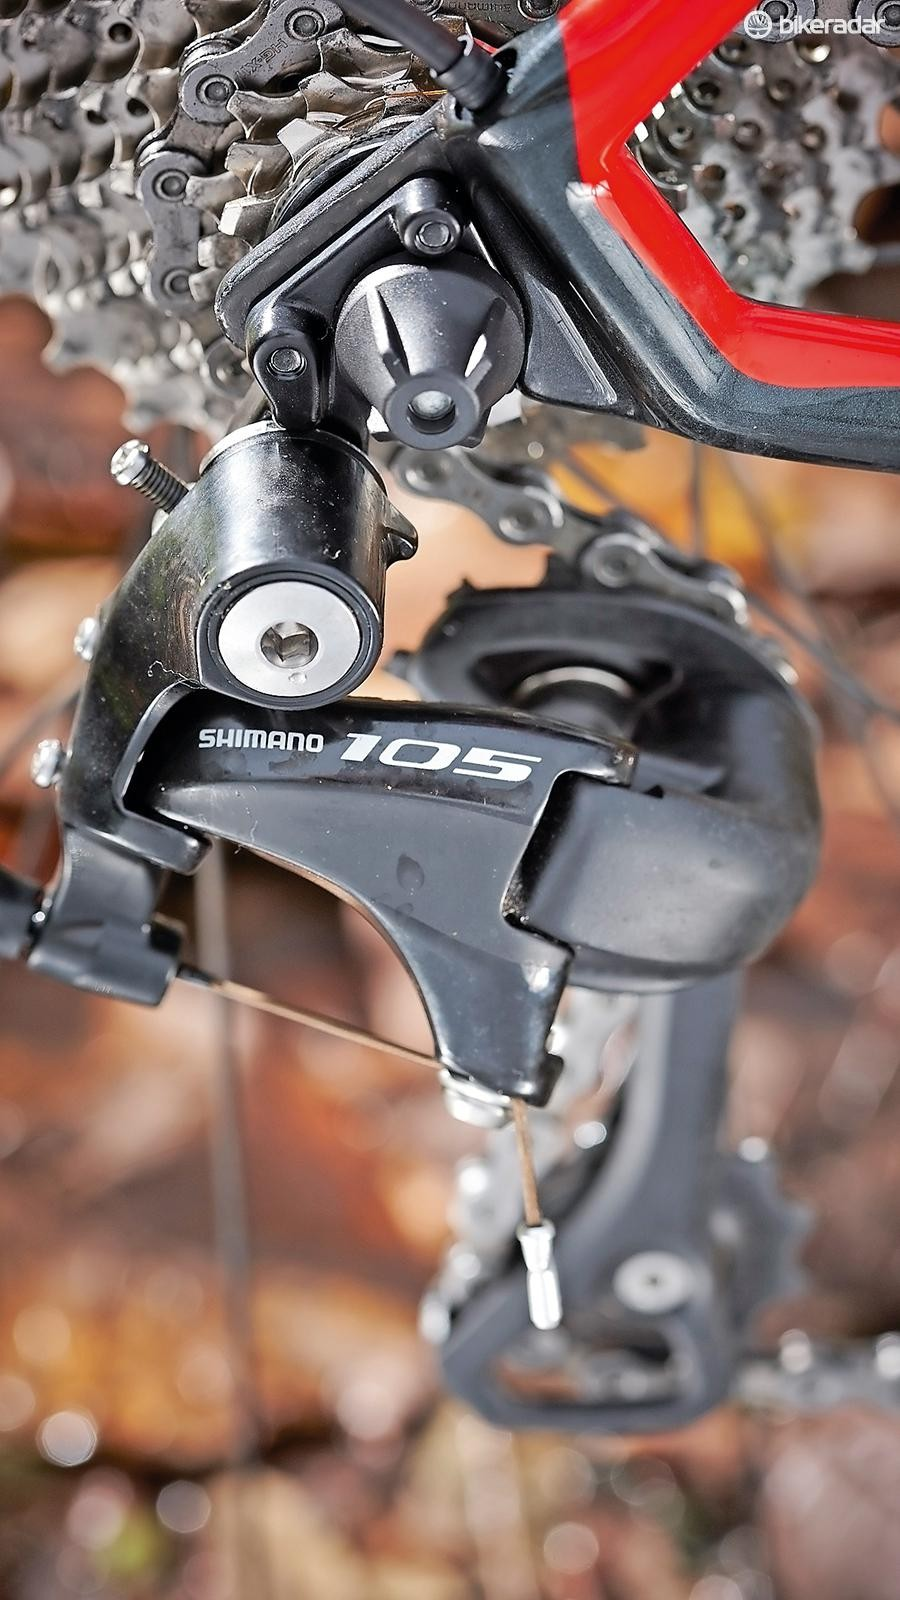 Smooth shifting 105 provides 11-speed cadence control